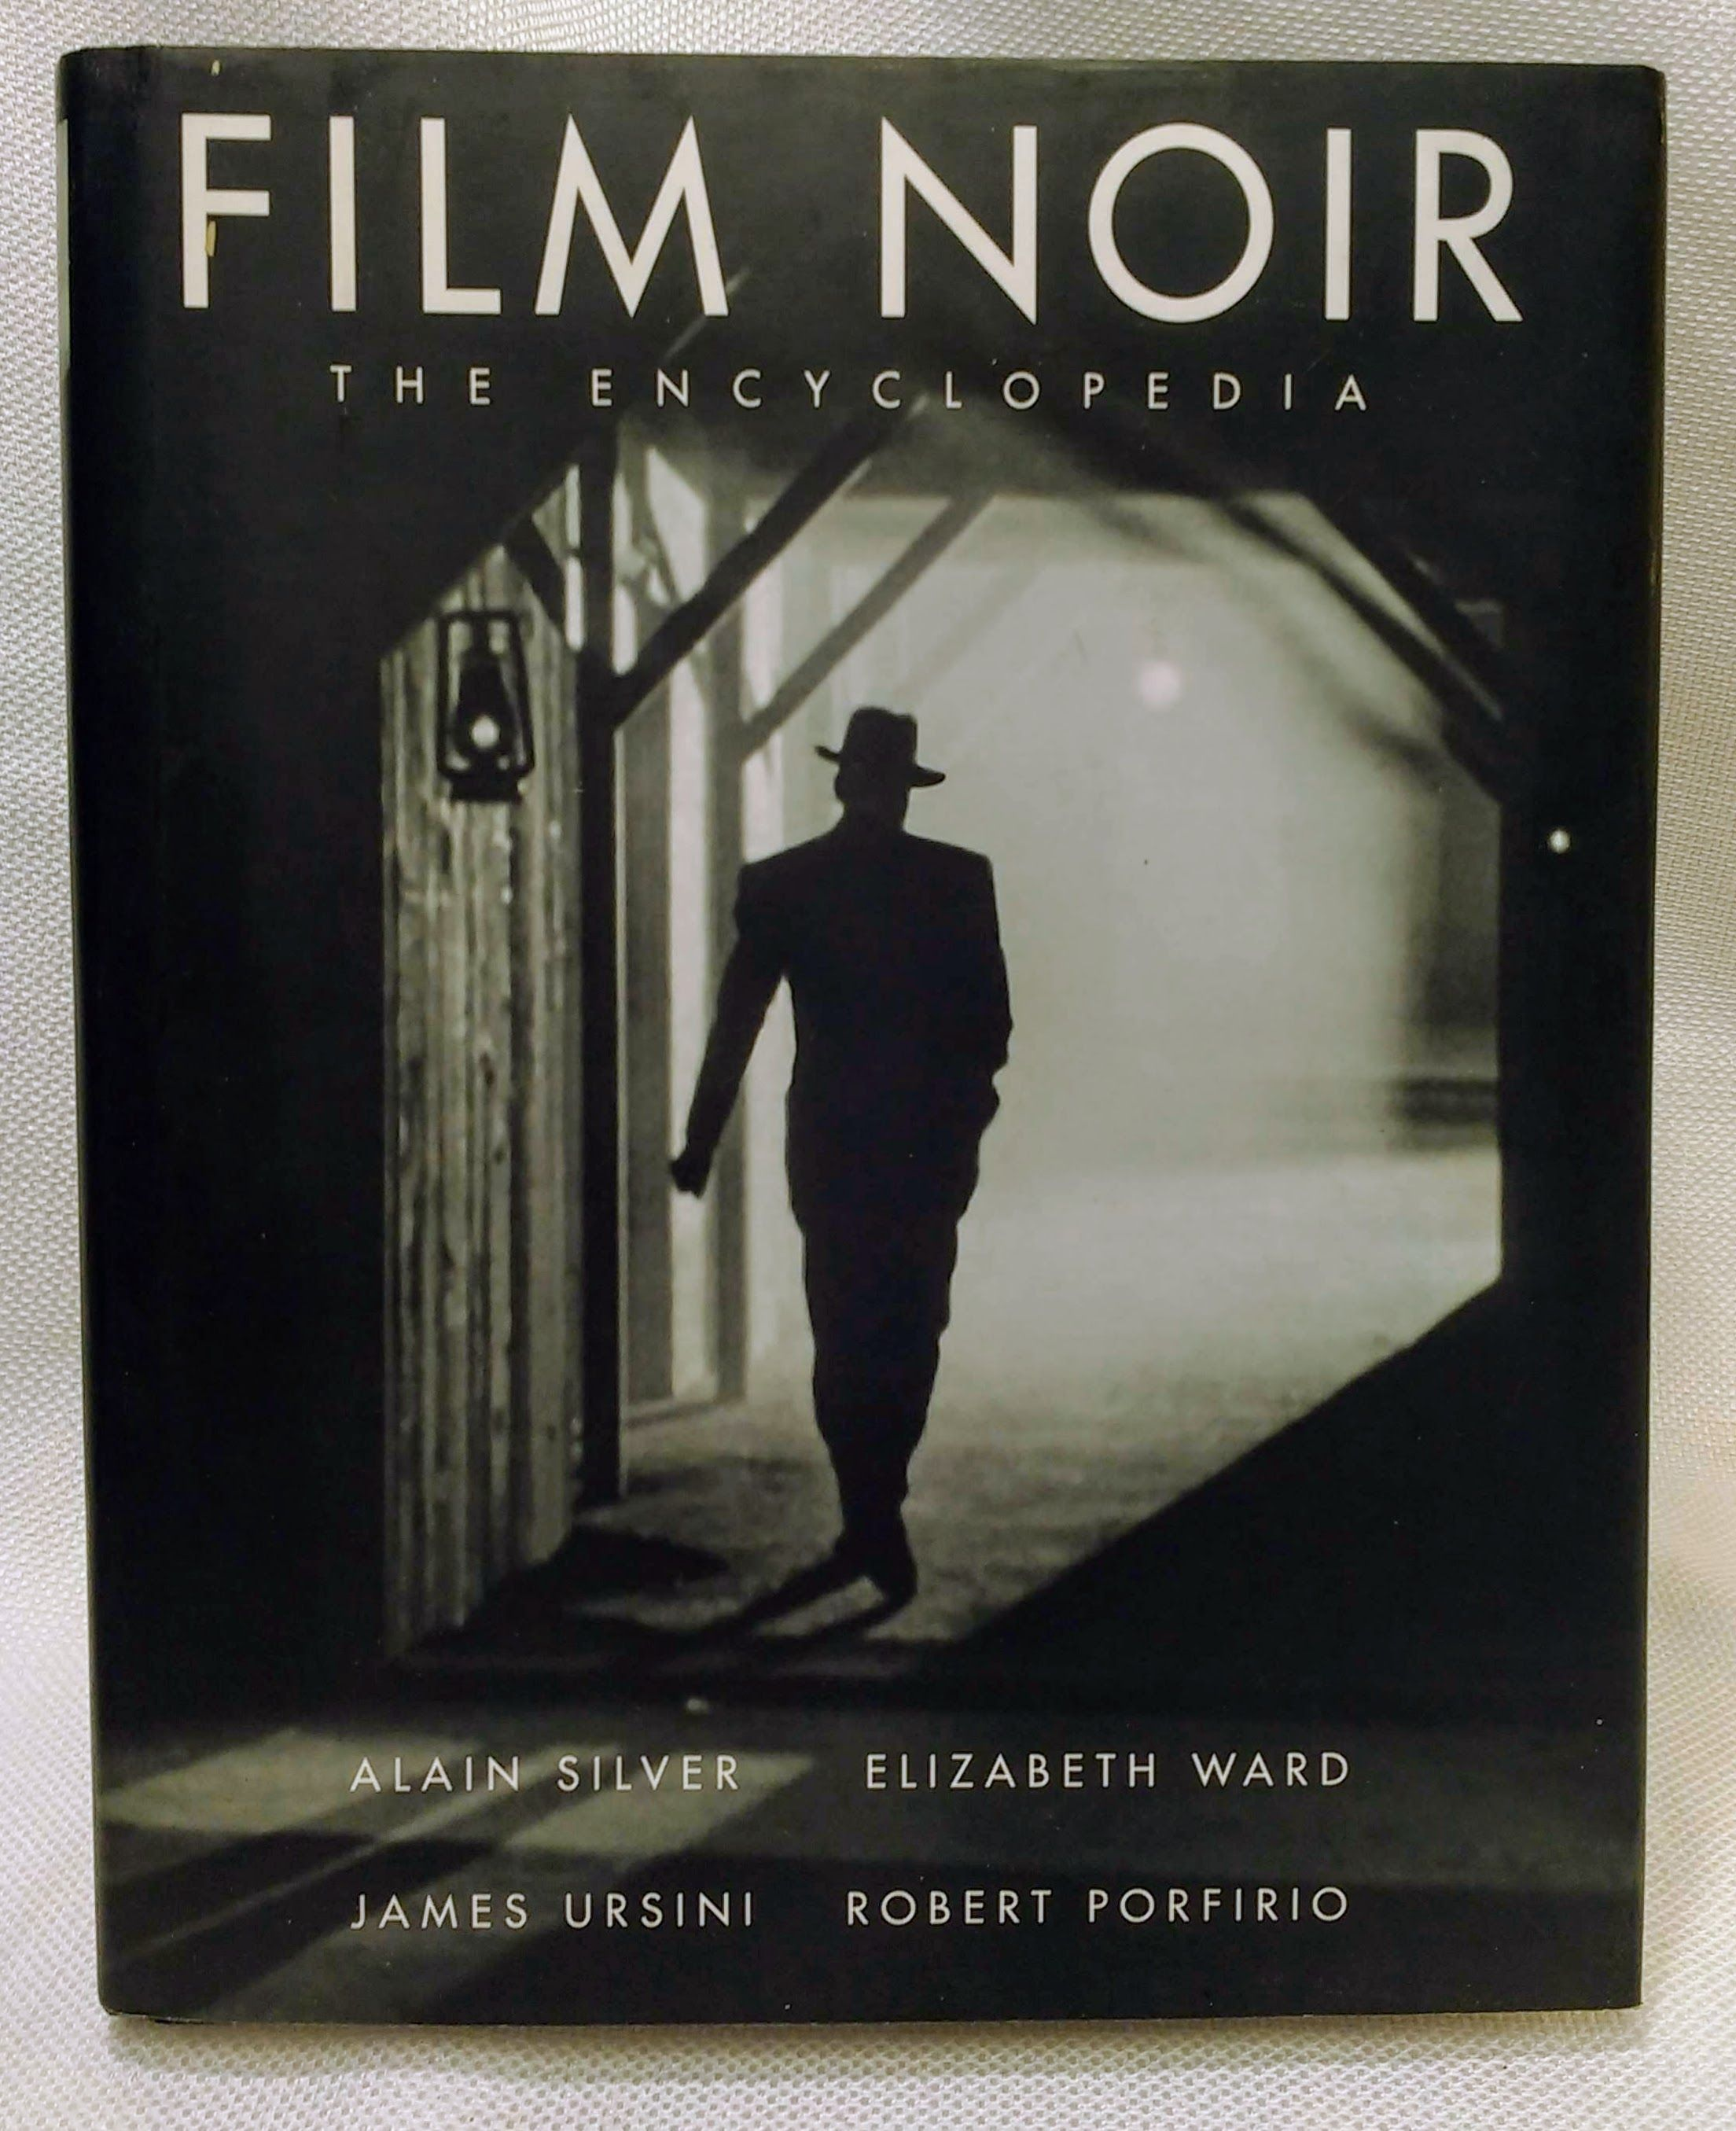 Film Noir: The Encyclopedia, Alain Silver [Editor]; Elizabeth Ward [Editor]; James Ursini [Editor]; Robert Porfirio [Editor];